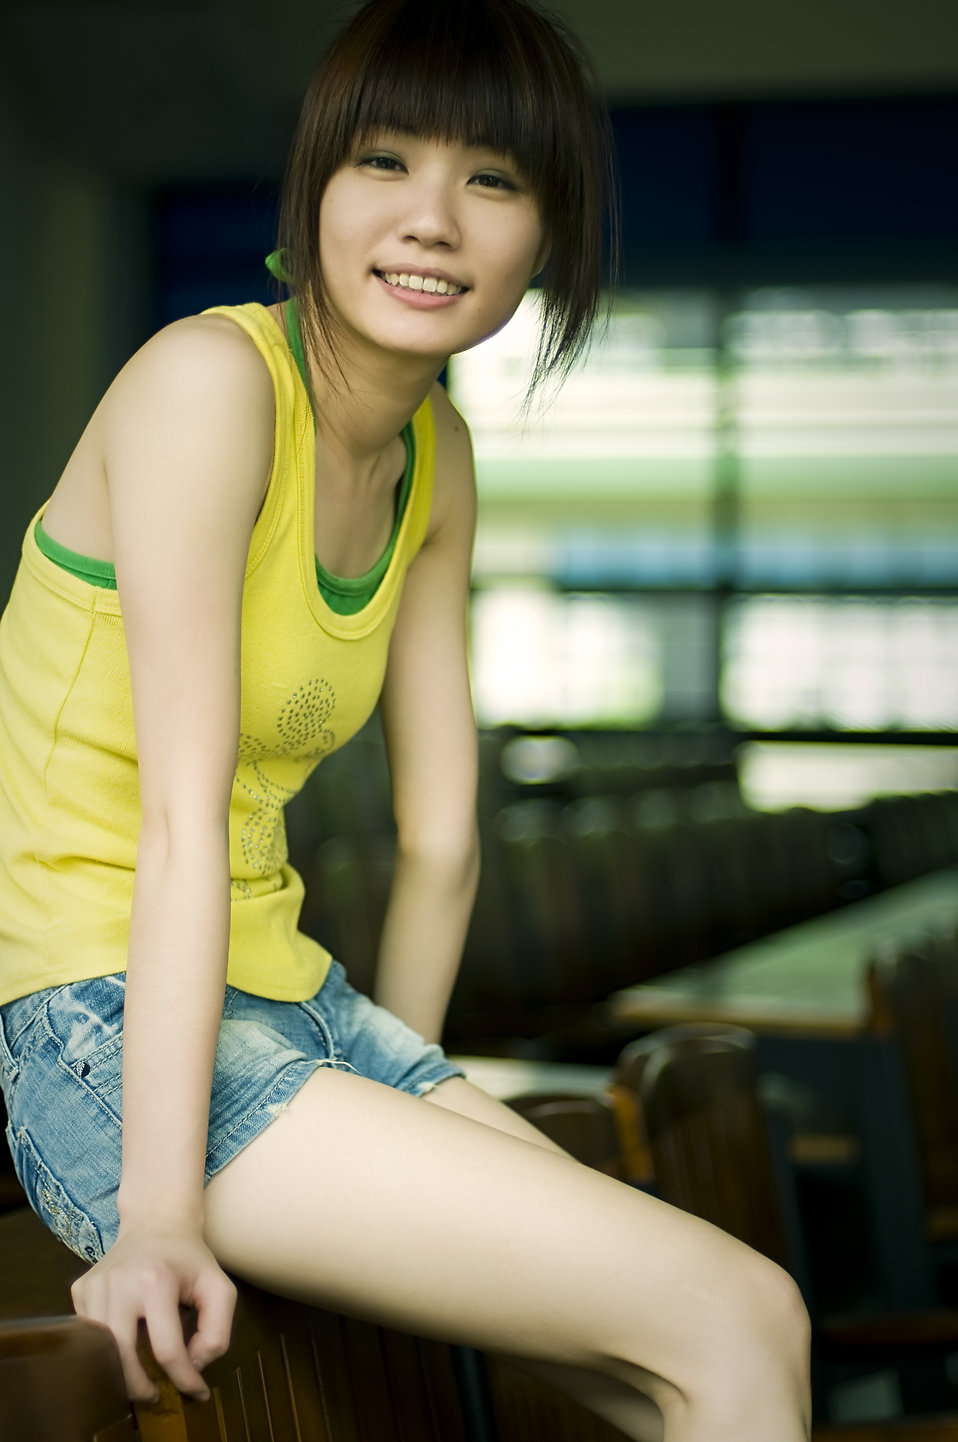 A beautiful Chinese girl posing indoors : Free Stock Photo